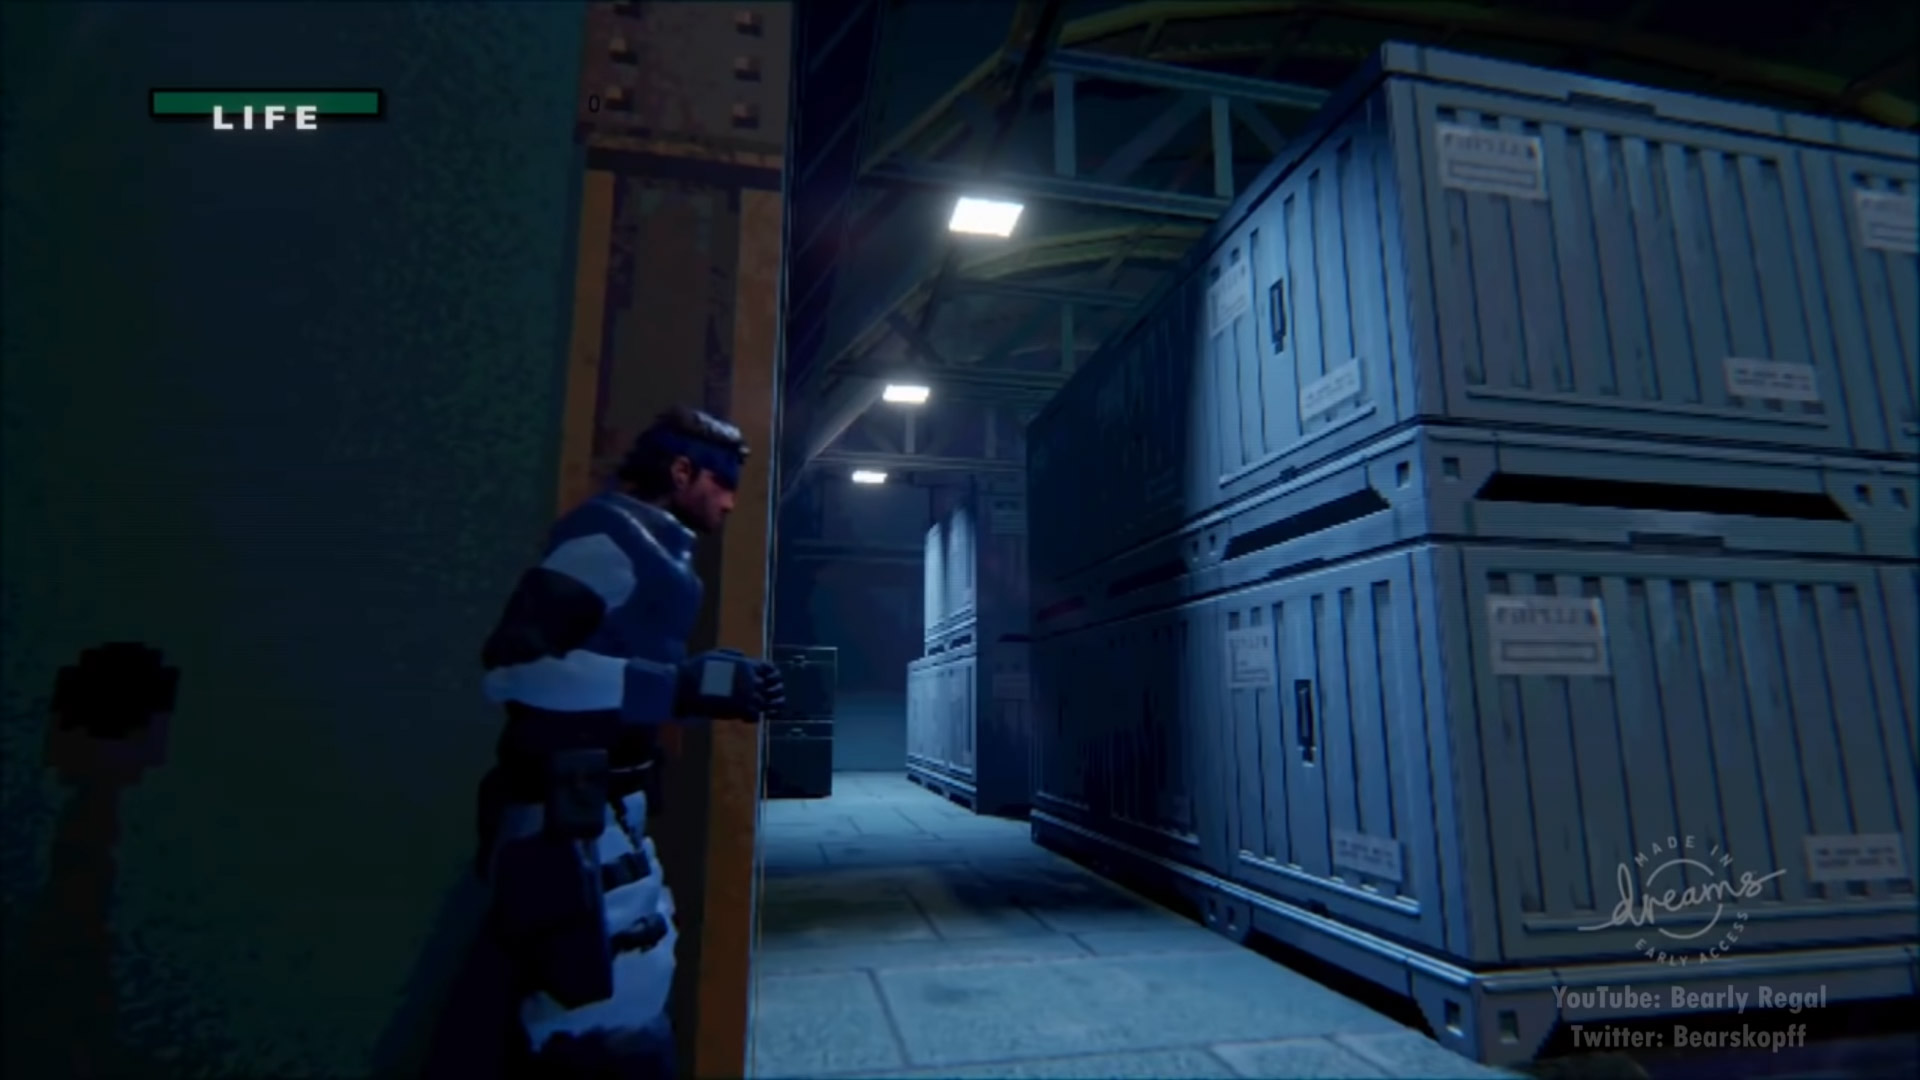 This Metal Gear Solid tribute in Dreams is off to a terrific